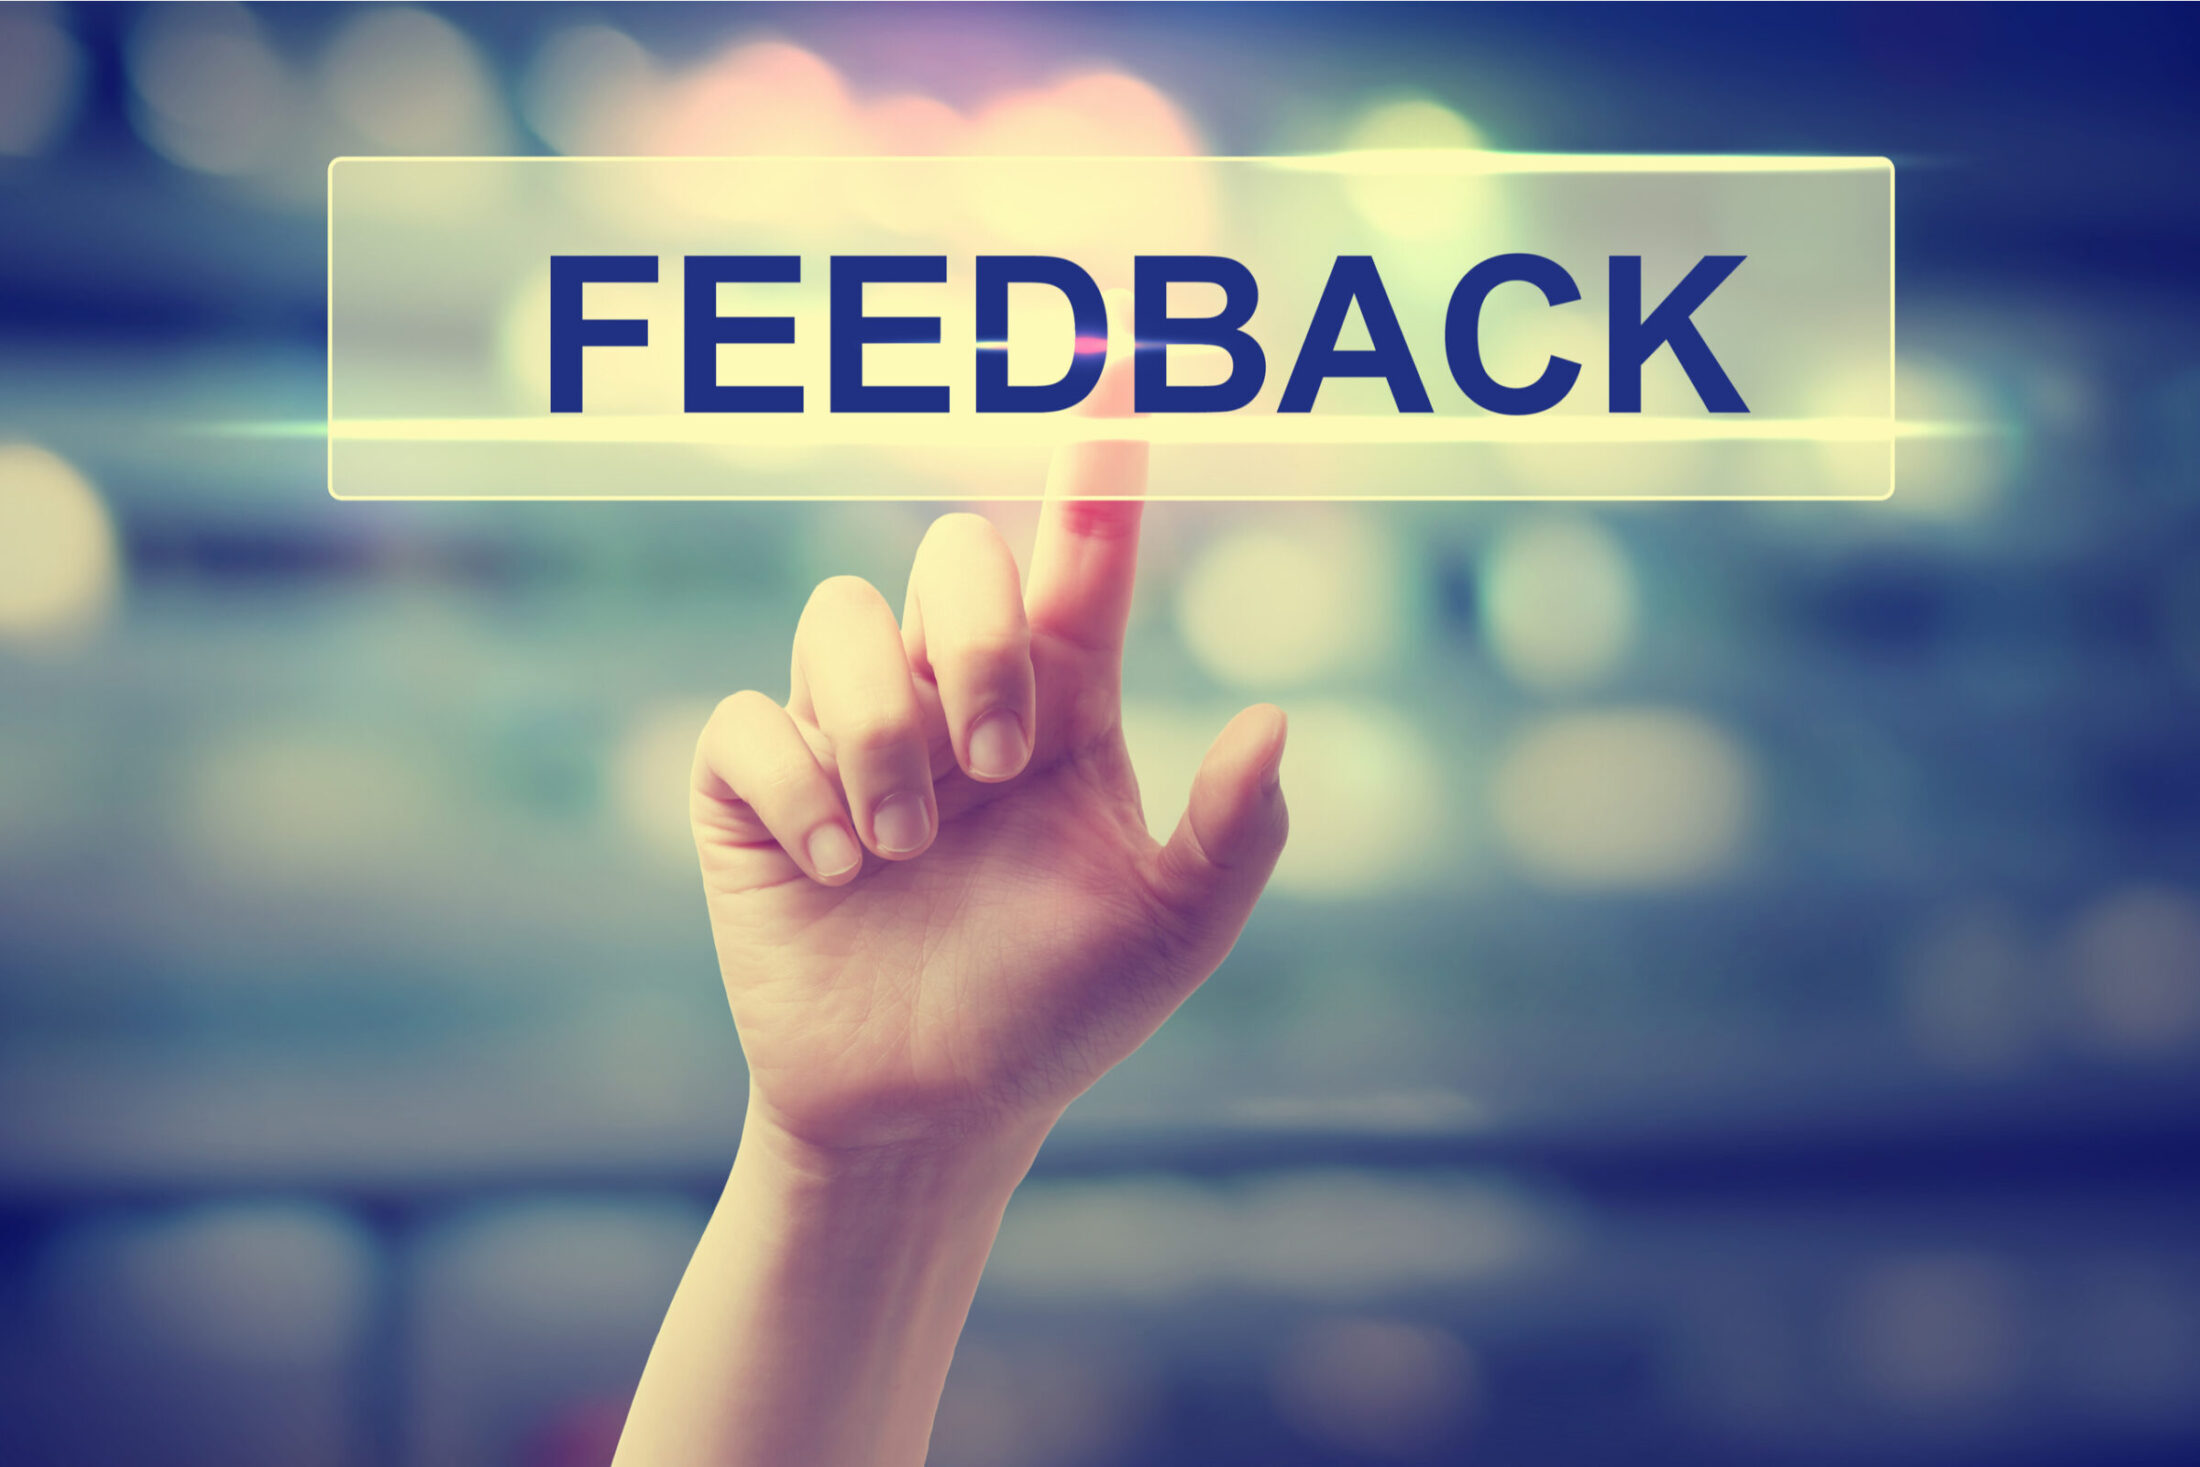 Are You Getting The Feedback You Need?